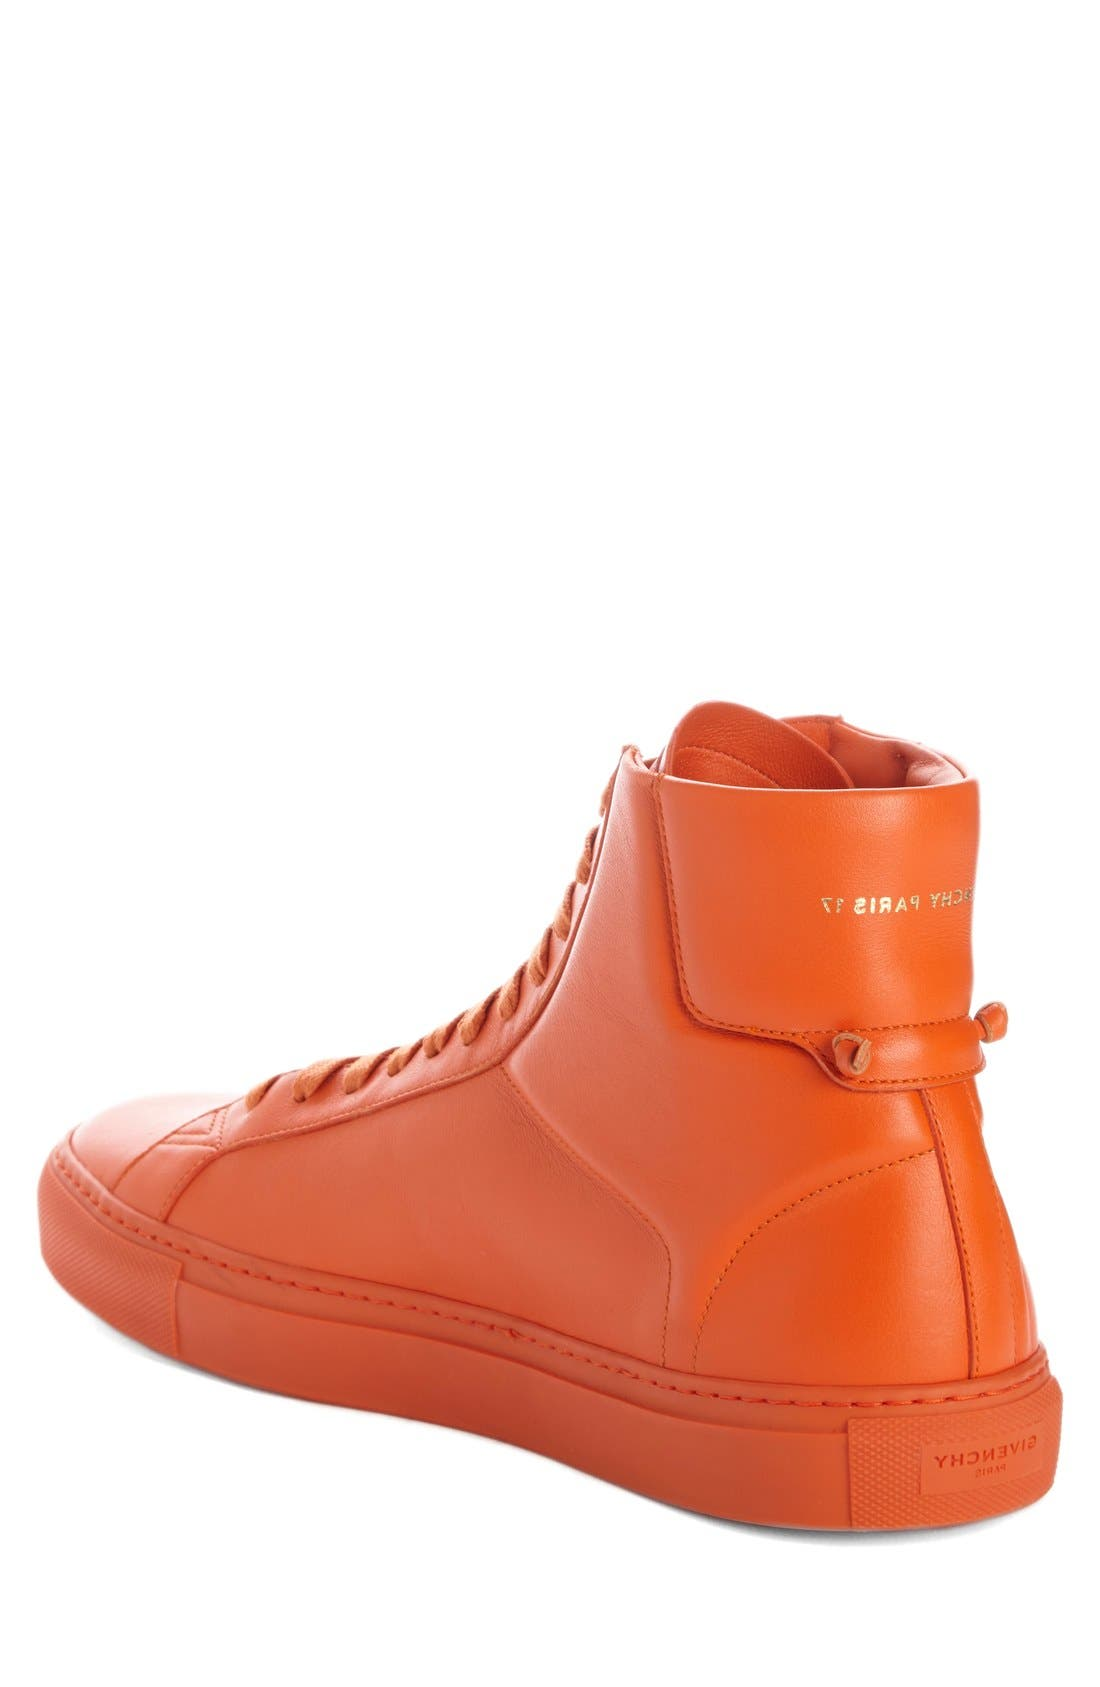 'Urban Knots' High Top Sneaker,                             Alternate thumbnail 2, color,                             Orange Leather